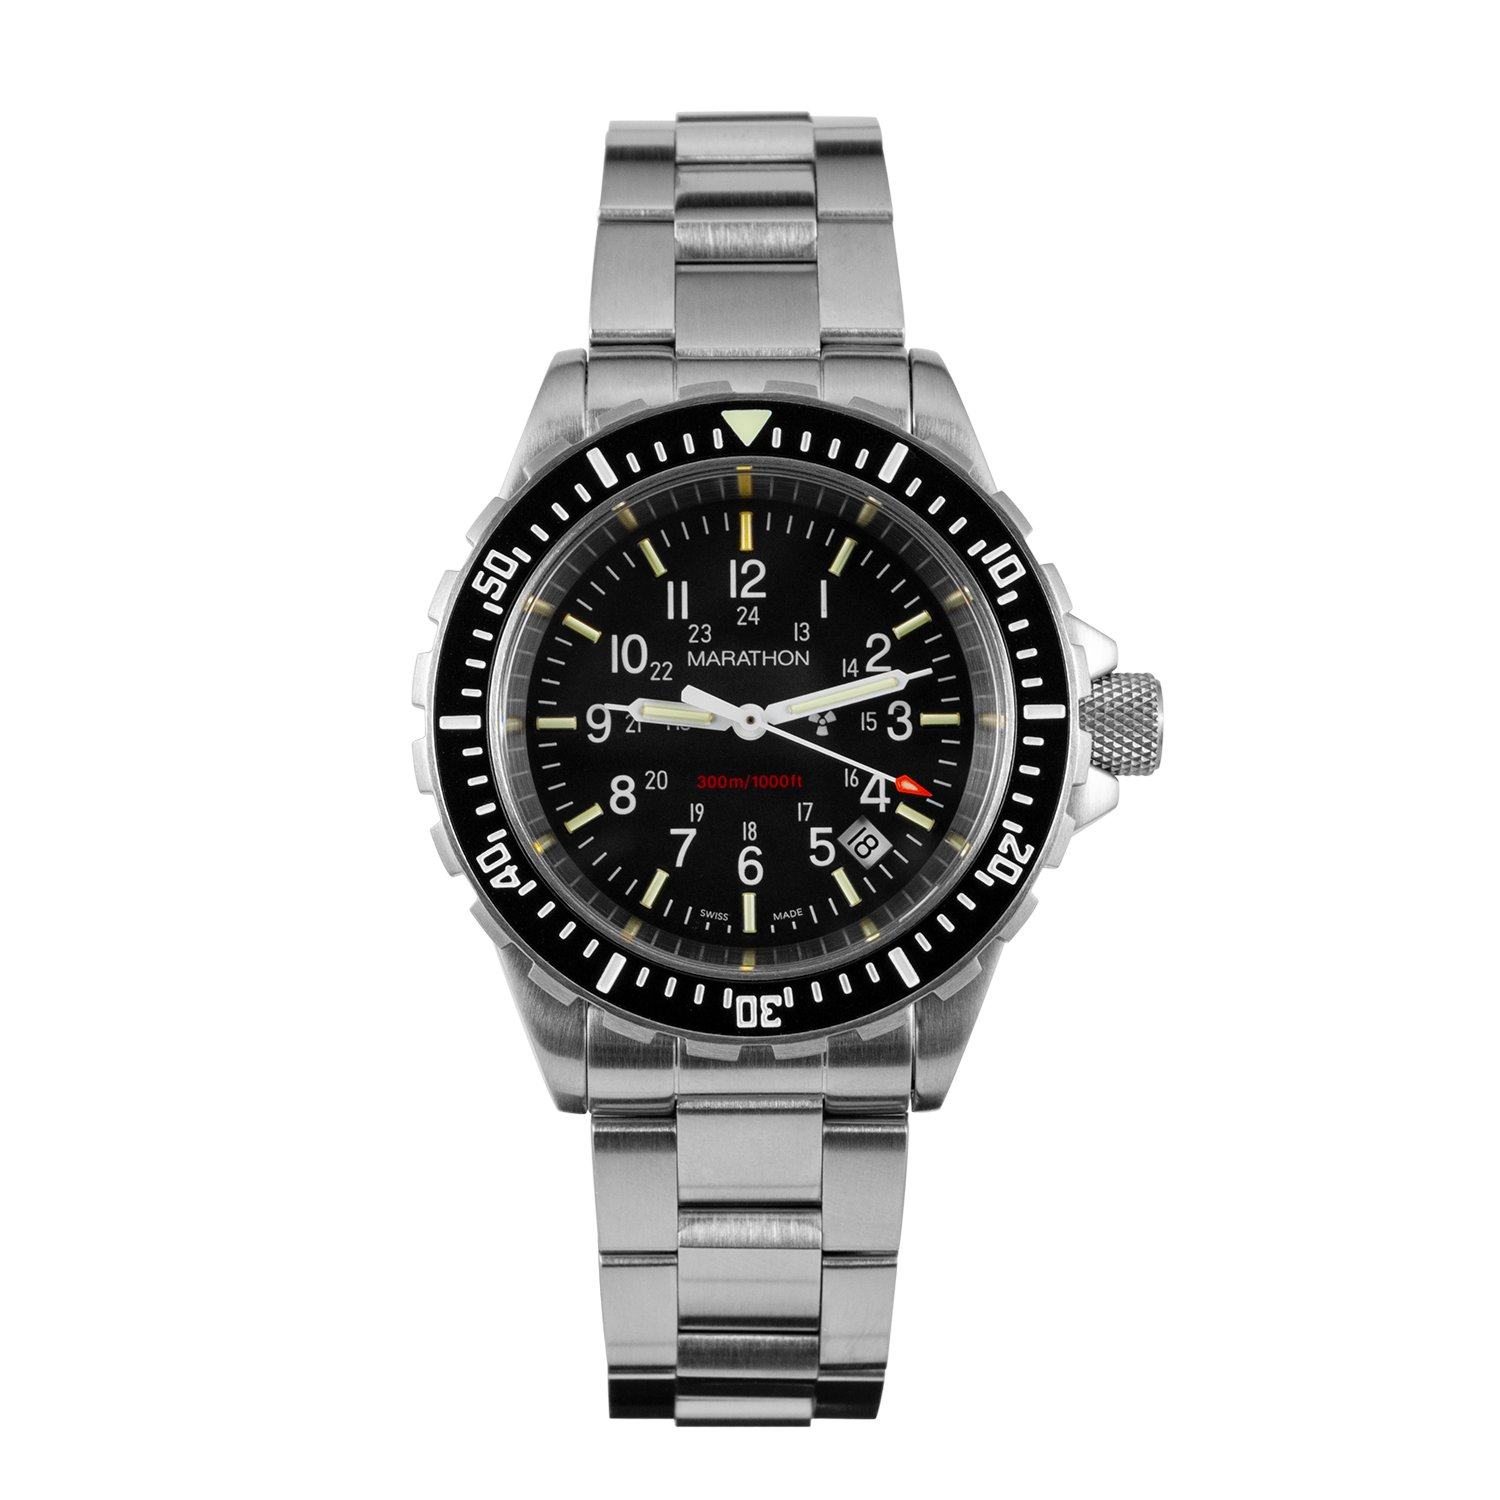 Marathon Watch WW194007 Tsar Swiss Made Military Issue Milspec Diver s Quartz Watch with Tritium Illumination and Sapphire Crystal 41 mm – Available or Rubber Strap or Stainless Steel Bracelet